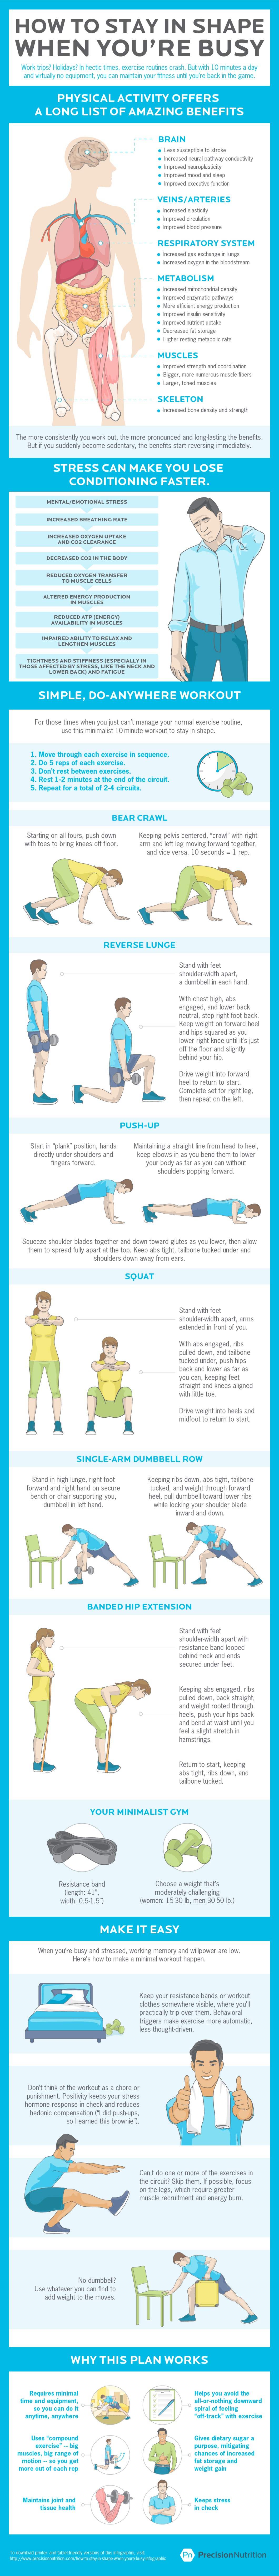 The No-Excuses Smart-and-Short Home Workout Plan for Busy People - Infographic